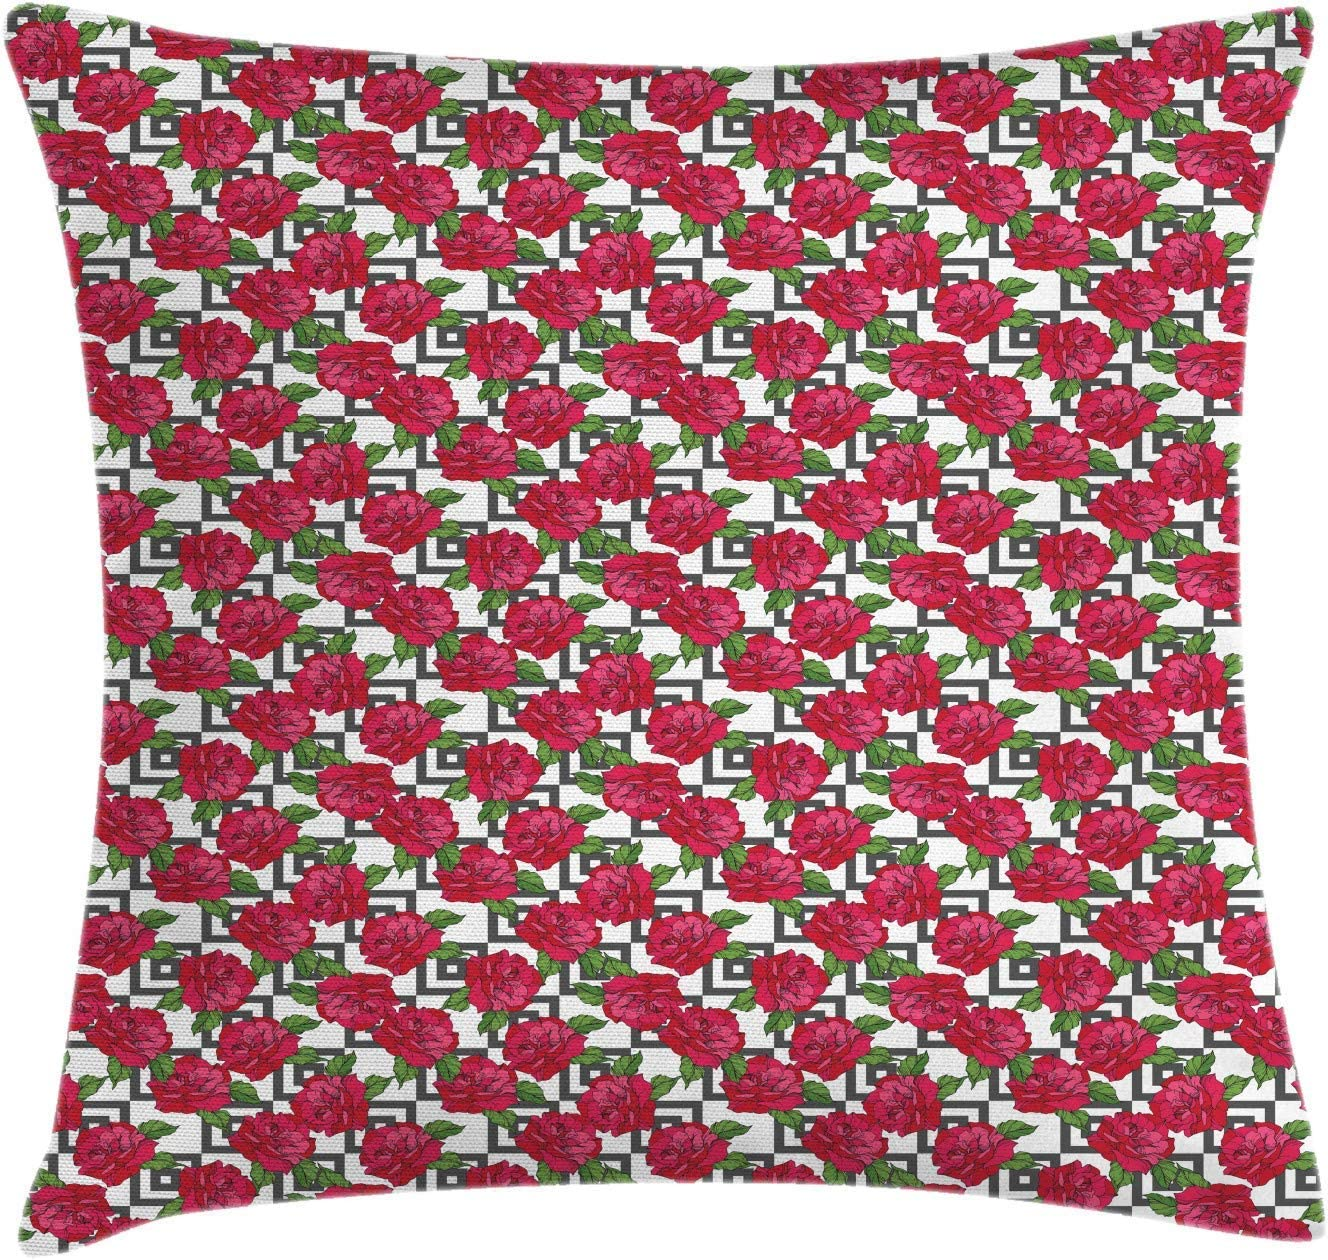 Roses Throw Pillow Cushion Cover, Floral and Geometric Modern Pattern with Pink Tones Flowers on Nested Squares, Decorative Square Accent Pillow Case, Multicolor,18 X 18 Inches